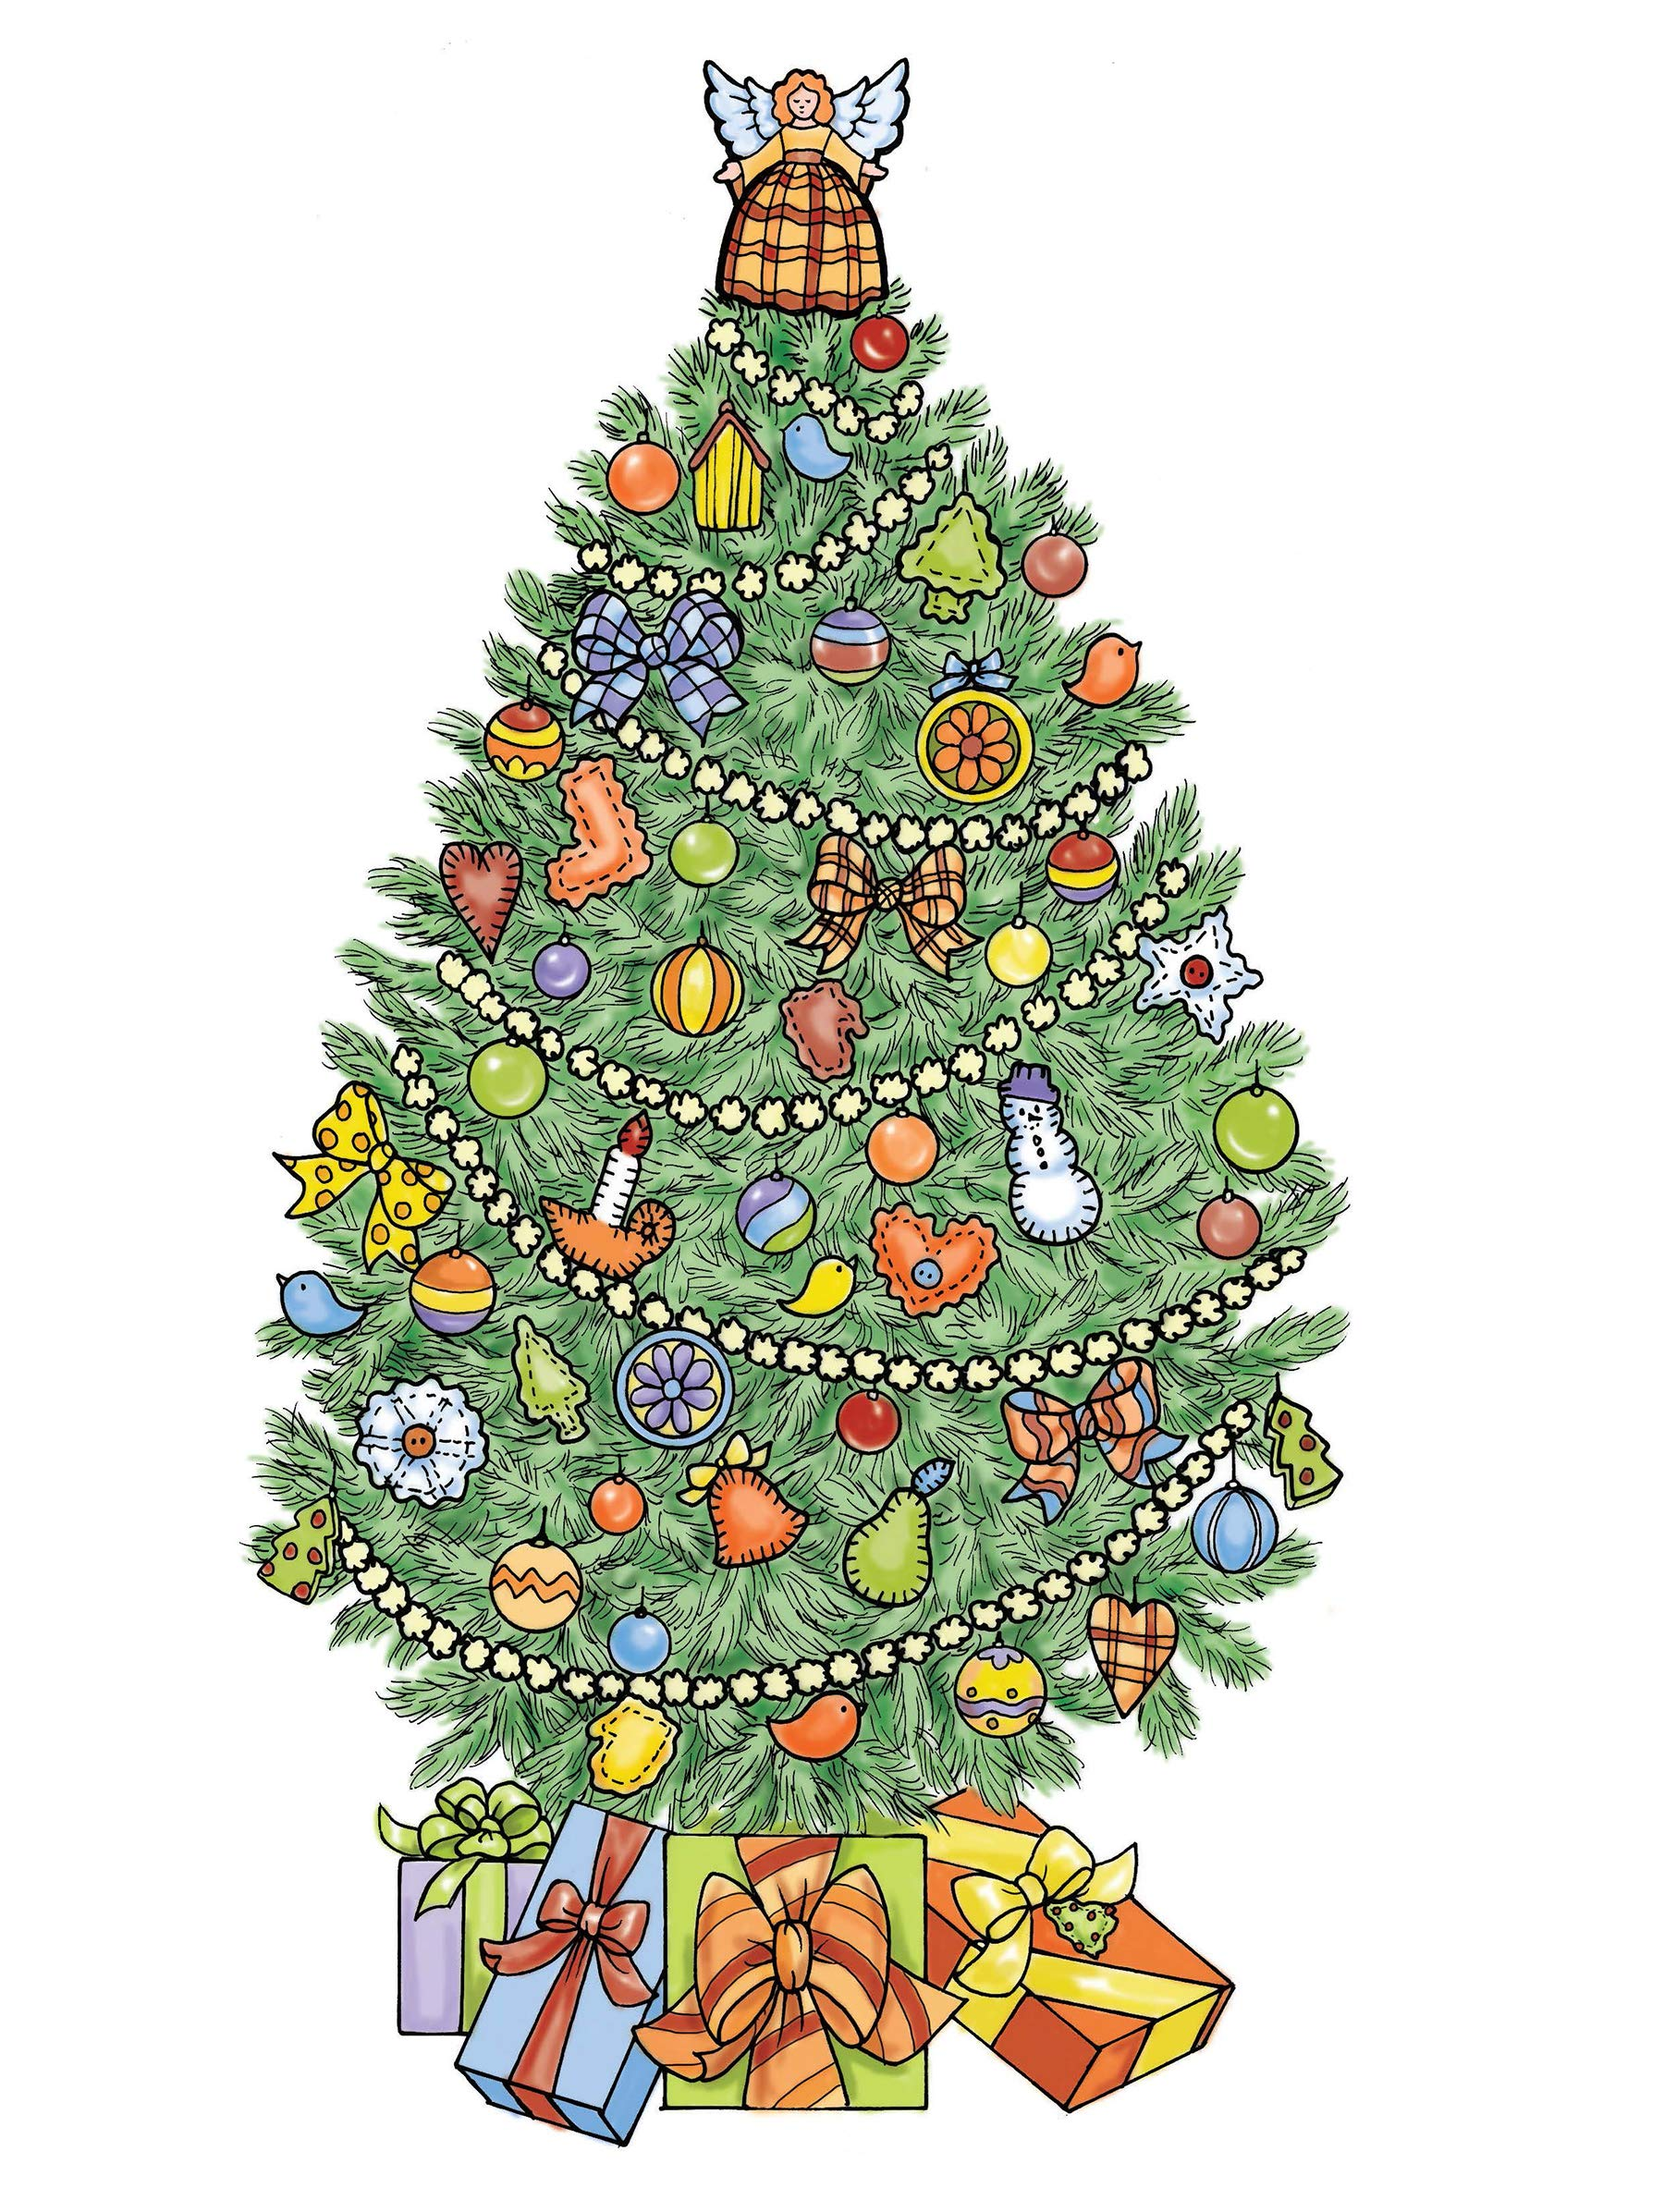 Pictures Of Christmas Trees.Amazon Com Creative Haven Christmas Trees Coloring Book